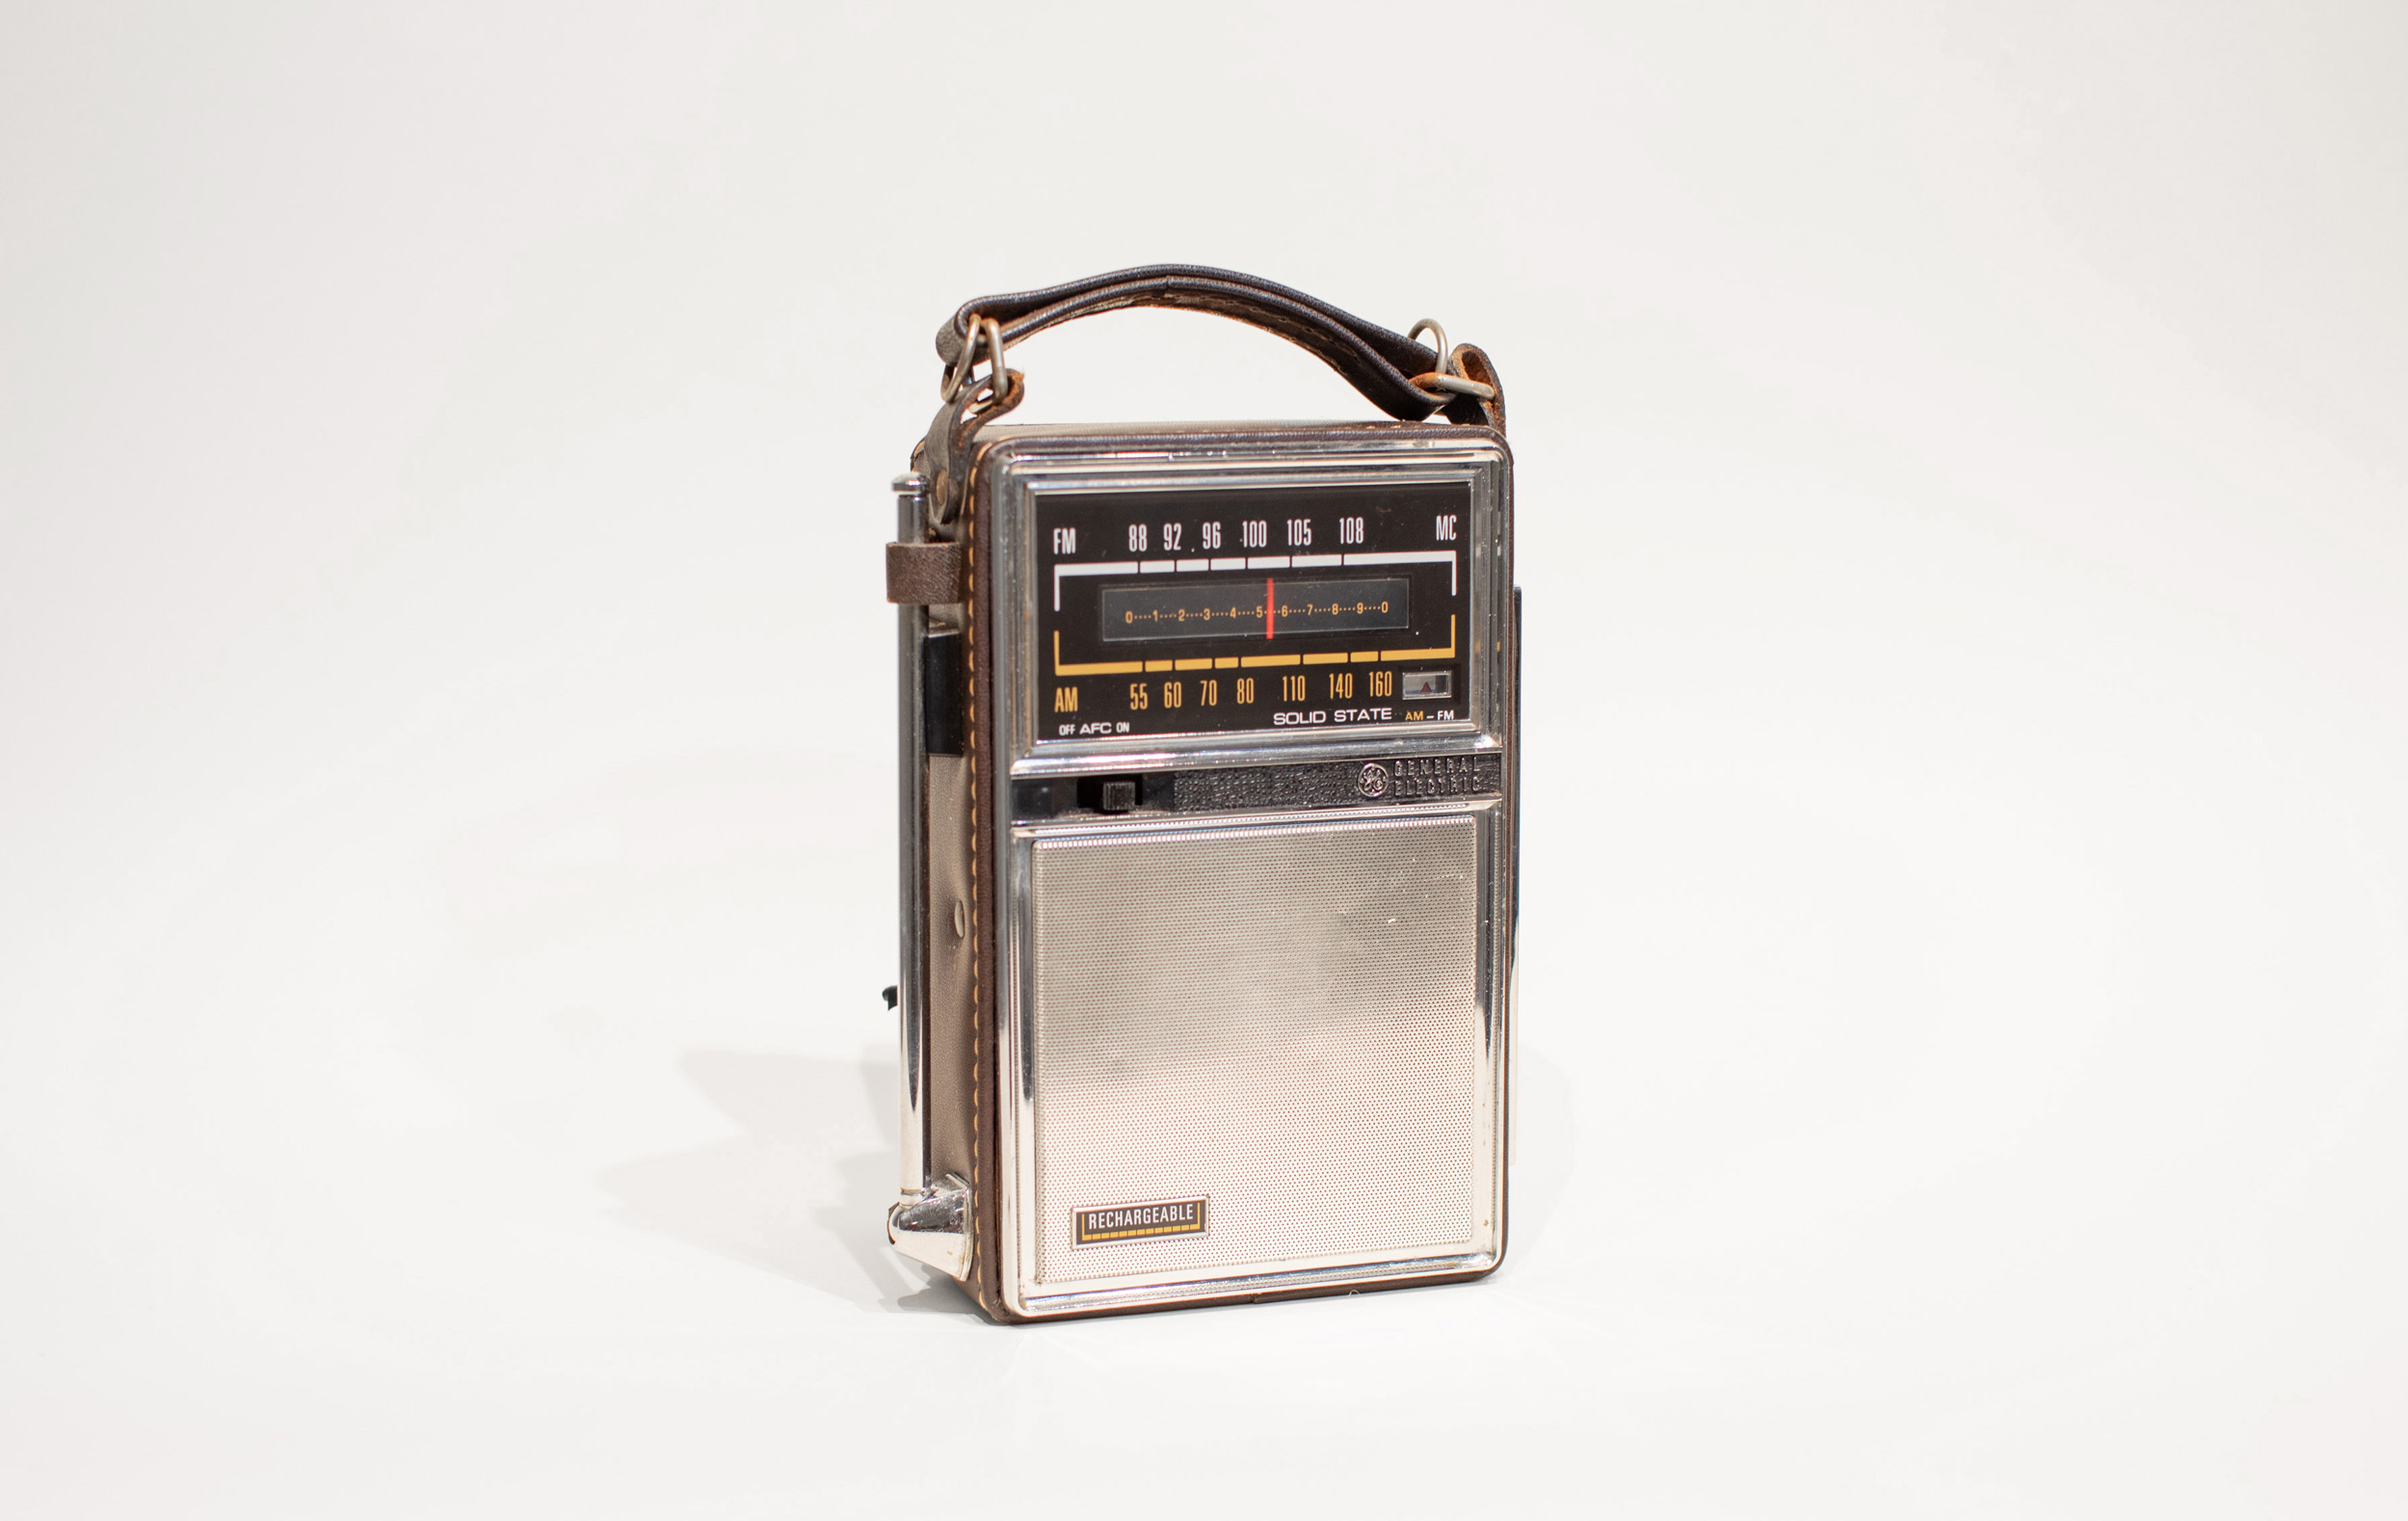 """From the Banks   Enjoy Series  (2019) GE P2975 AM/FM Transistor Radio, FM Transmitter, Jacques Brel's  Quand on n'a que l'amour  9.5"""" x 5"""" x 2.5"""", Duration Infinite"""